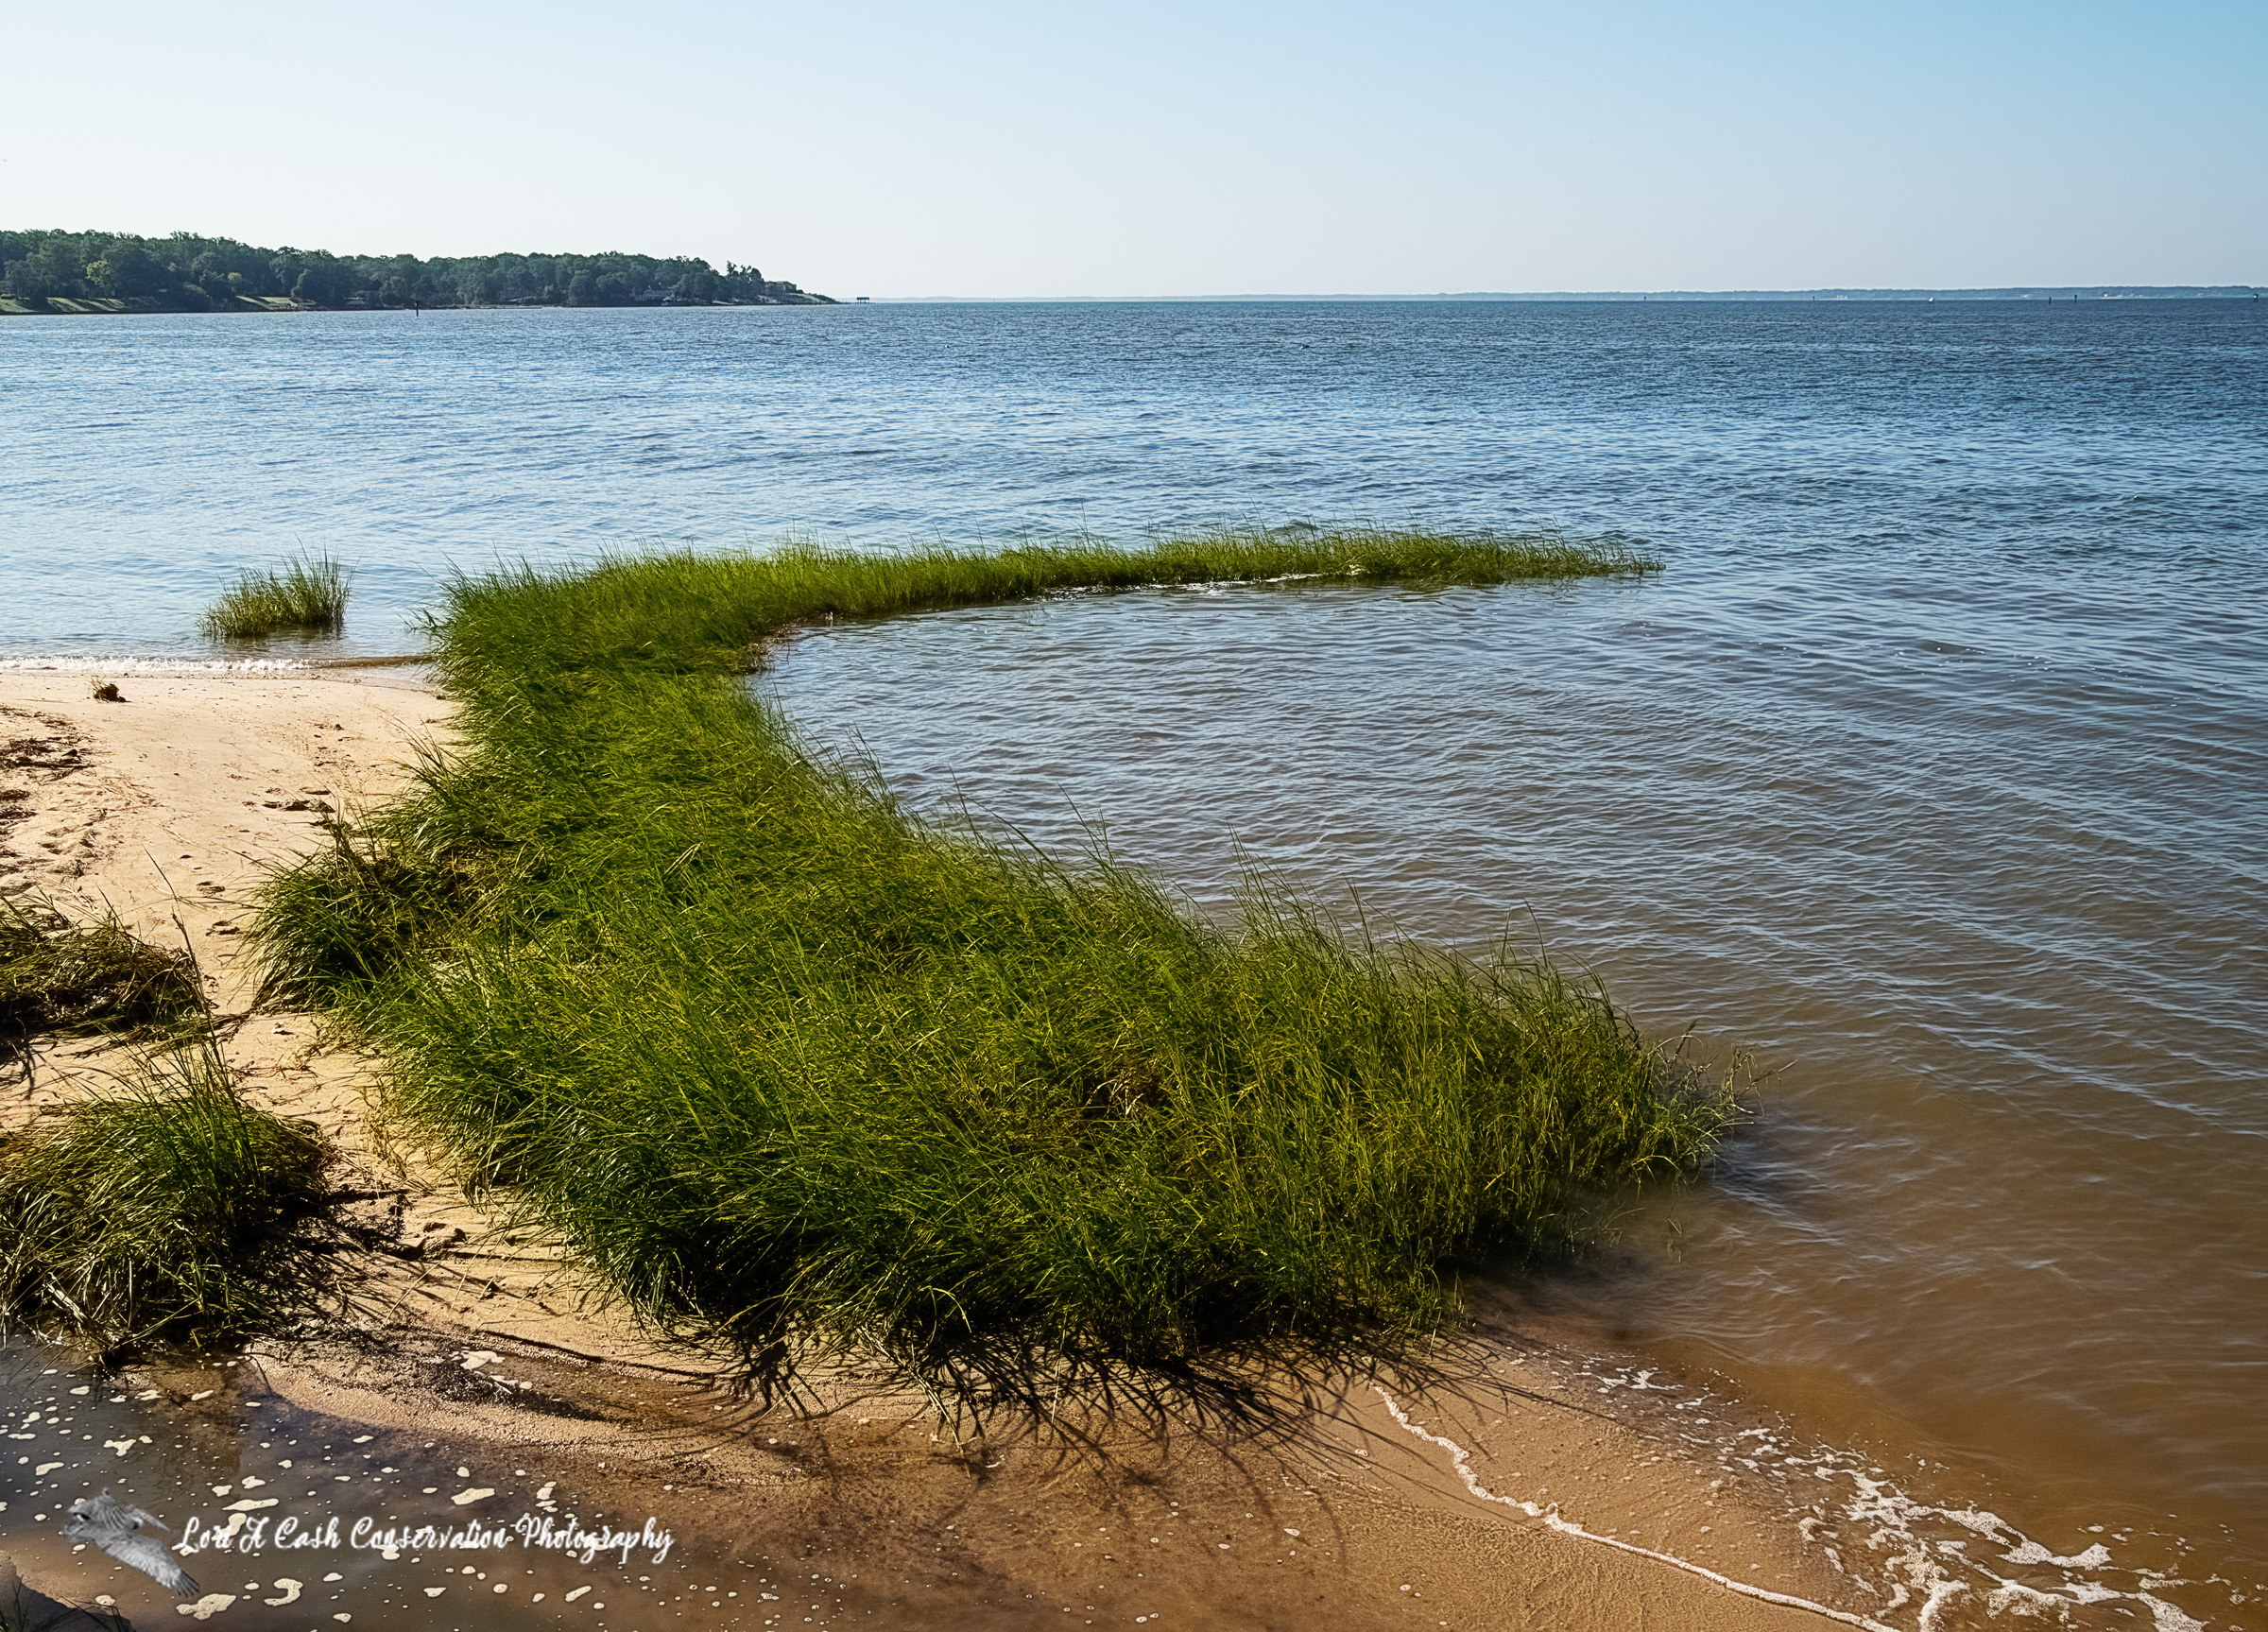 Beach area with grass on the shore with the view of the James River from the Riverview Farm Park in Newport News, Virginia.